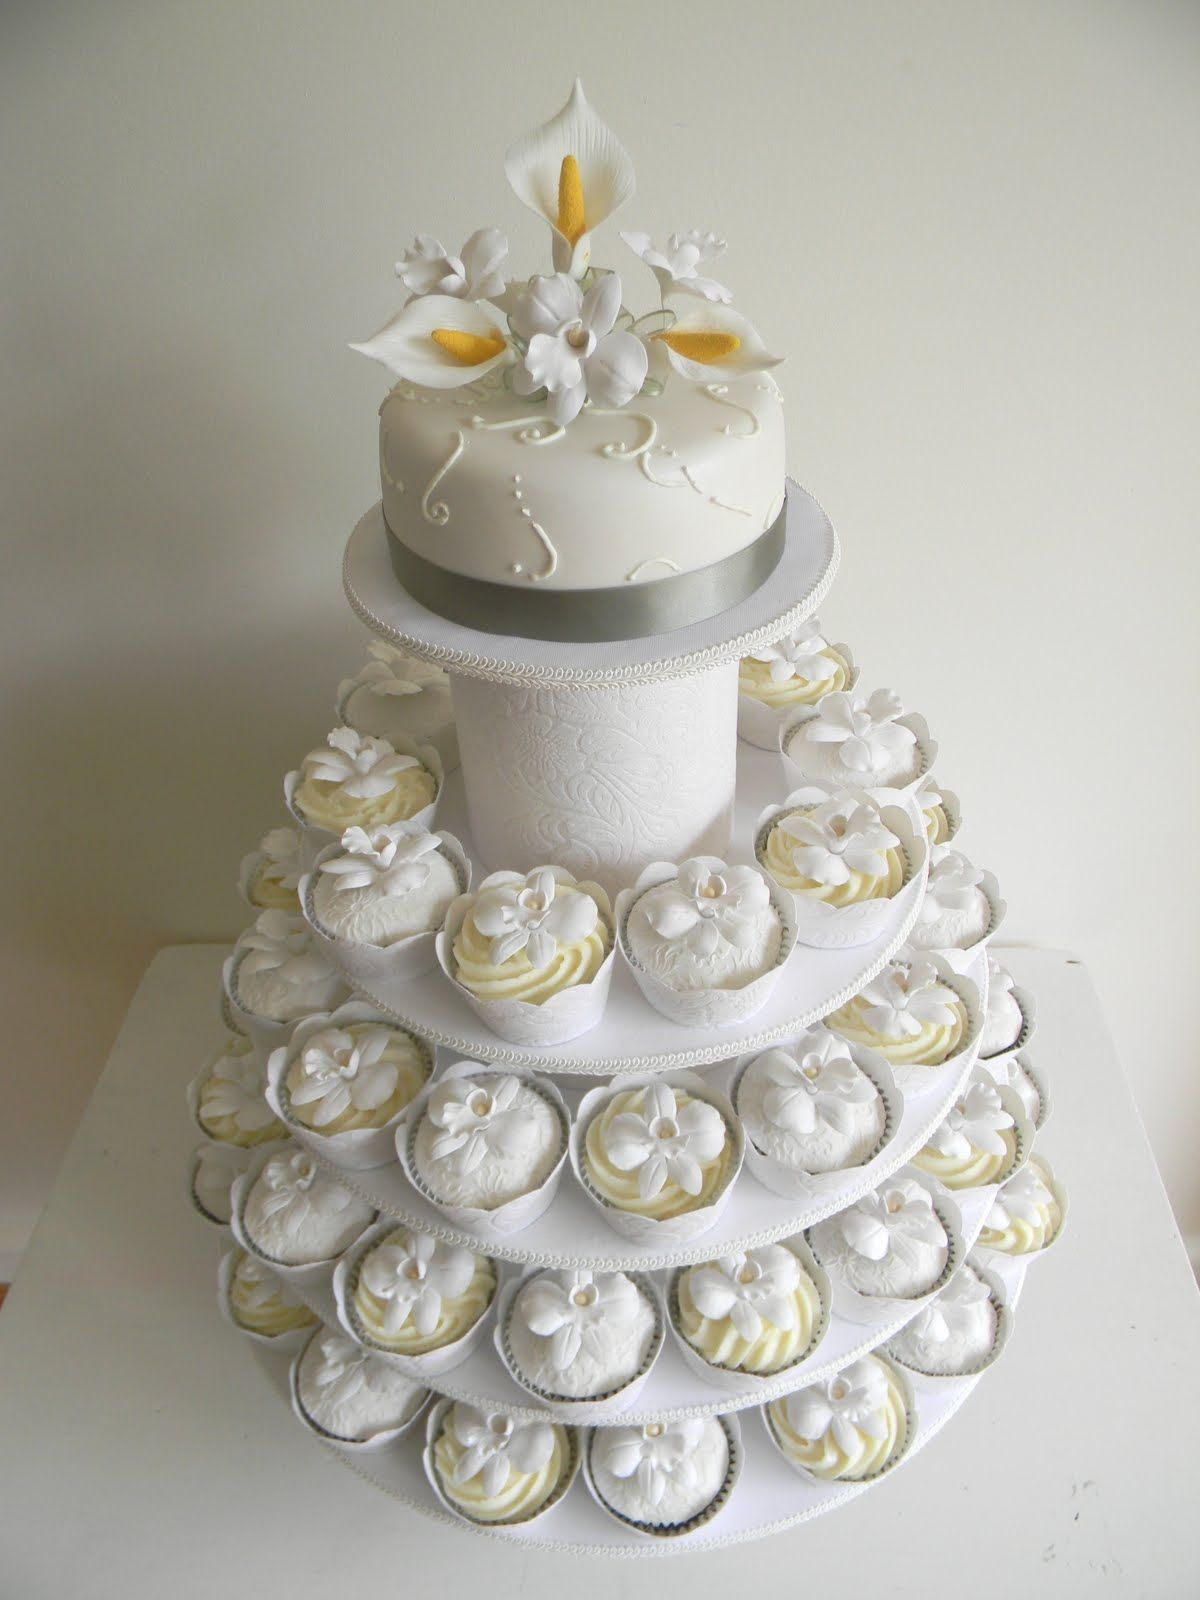 Cupcakes Are So Easy To Be Made At Home Wedding cupcake